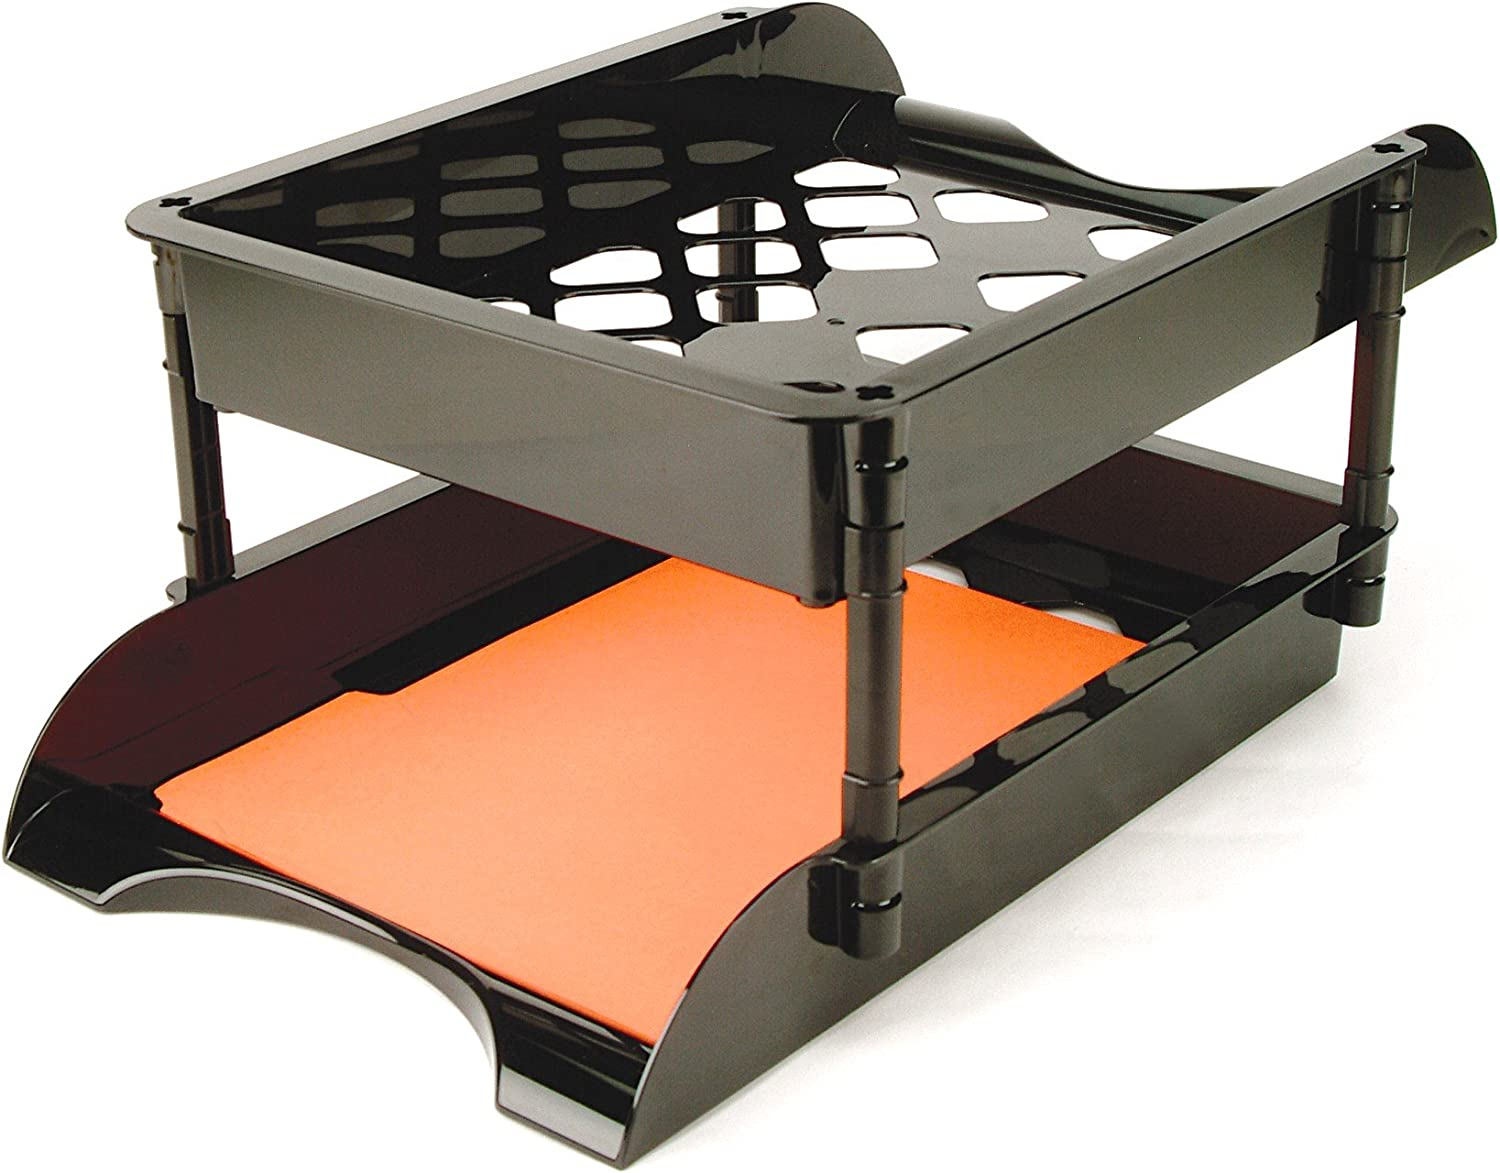 Officemate Unbreakable High Capacity Trays, Set of 2, Black (21072)